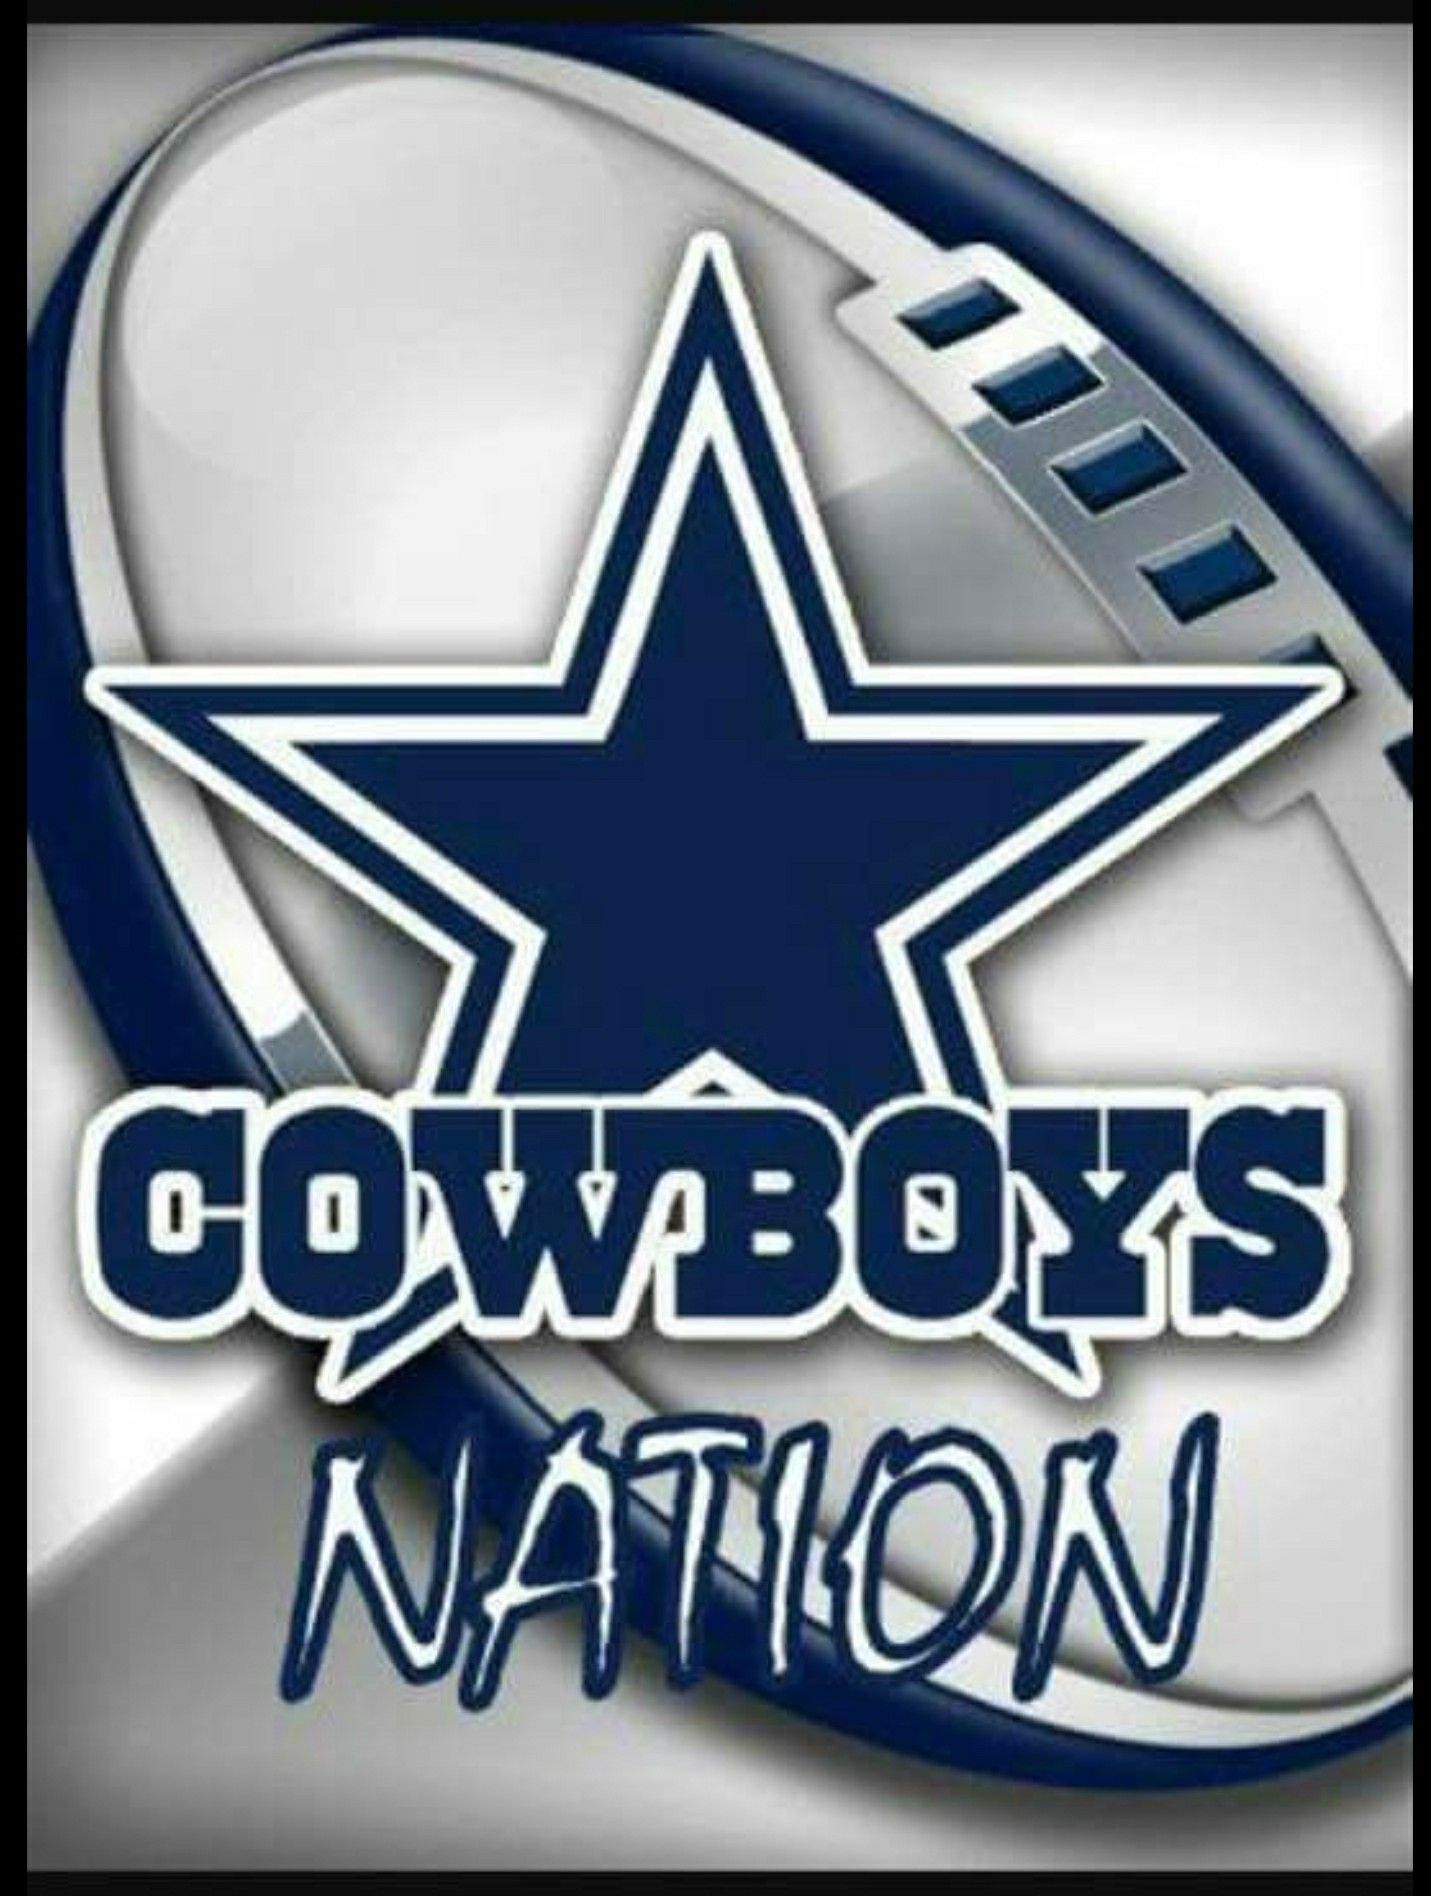 Pin By Erika Cunningham On Dallas Cowboys Til I Die Dallas Cowboys Tattoo Dallas Cowboys Wallpaper Dallas Cowboys Images